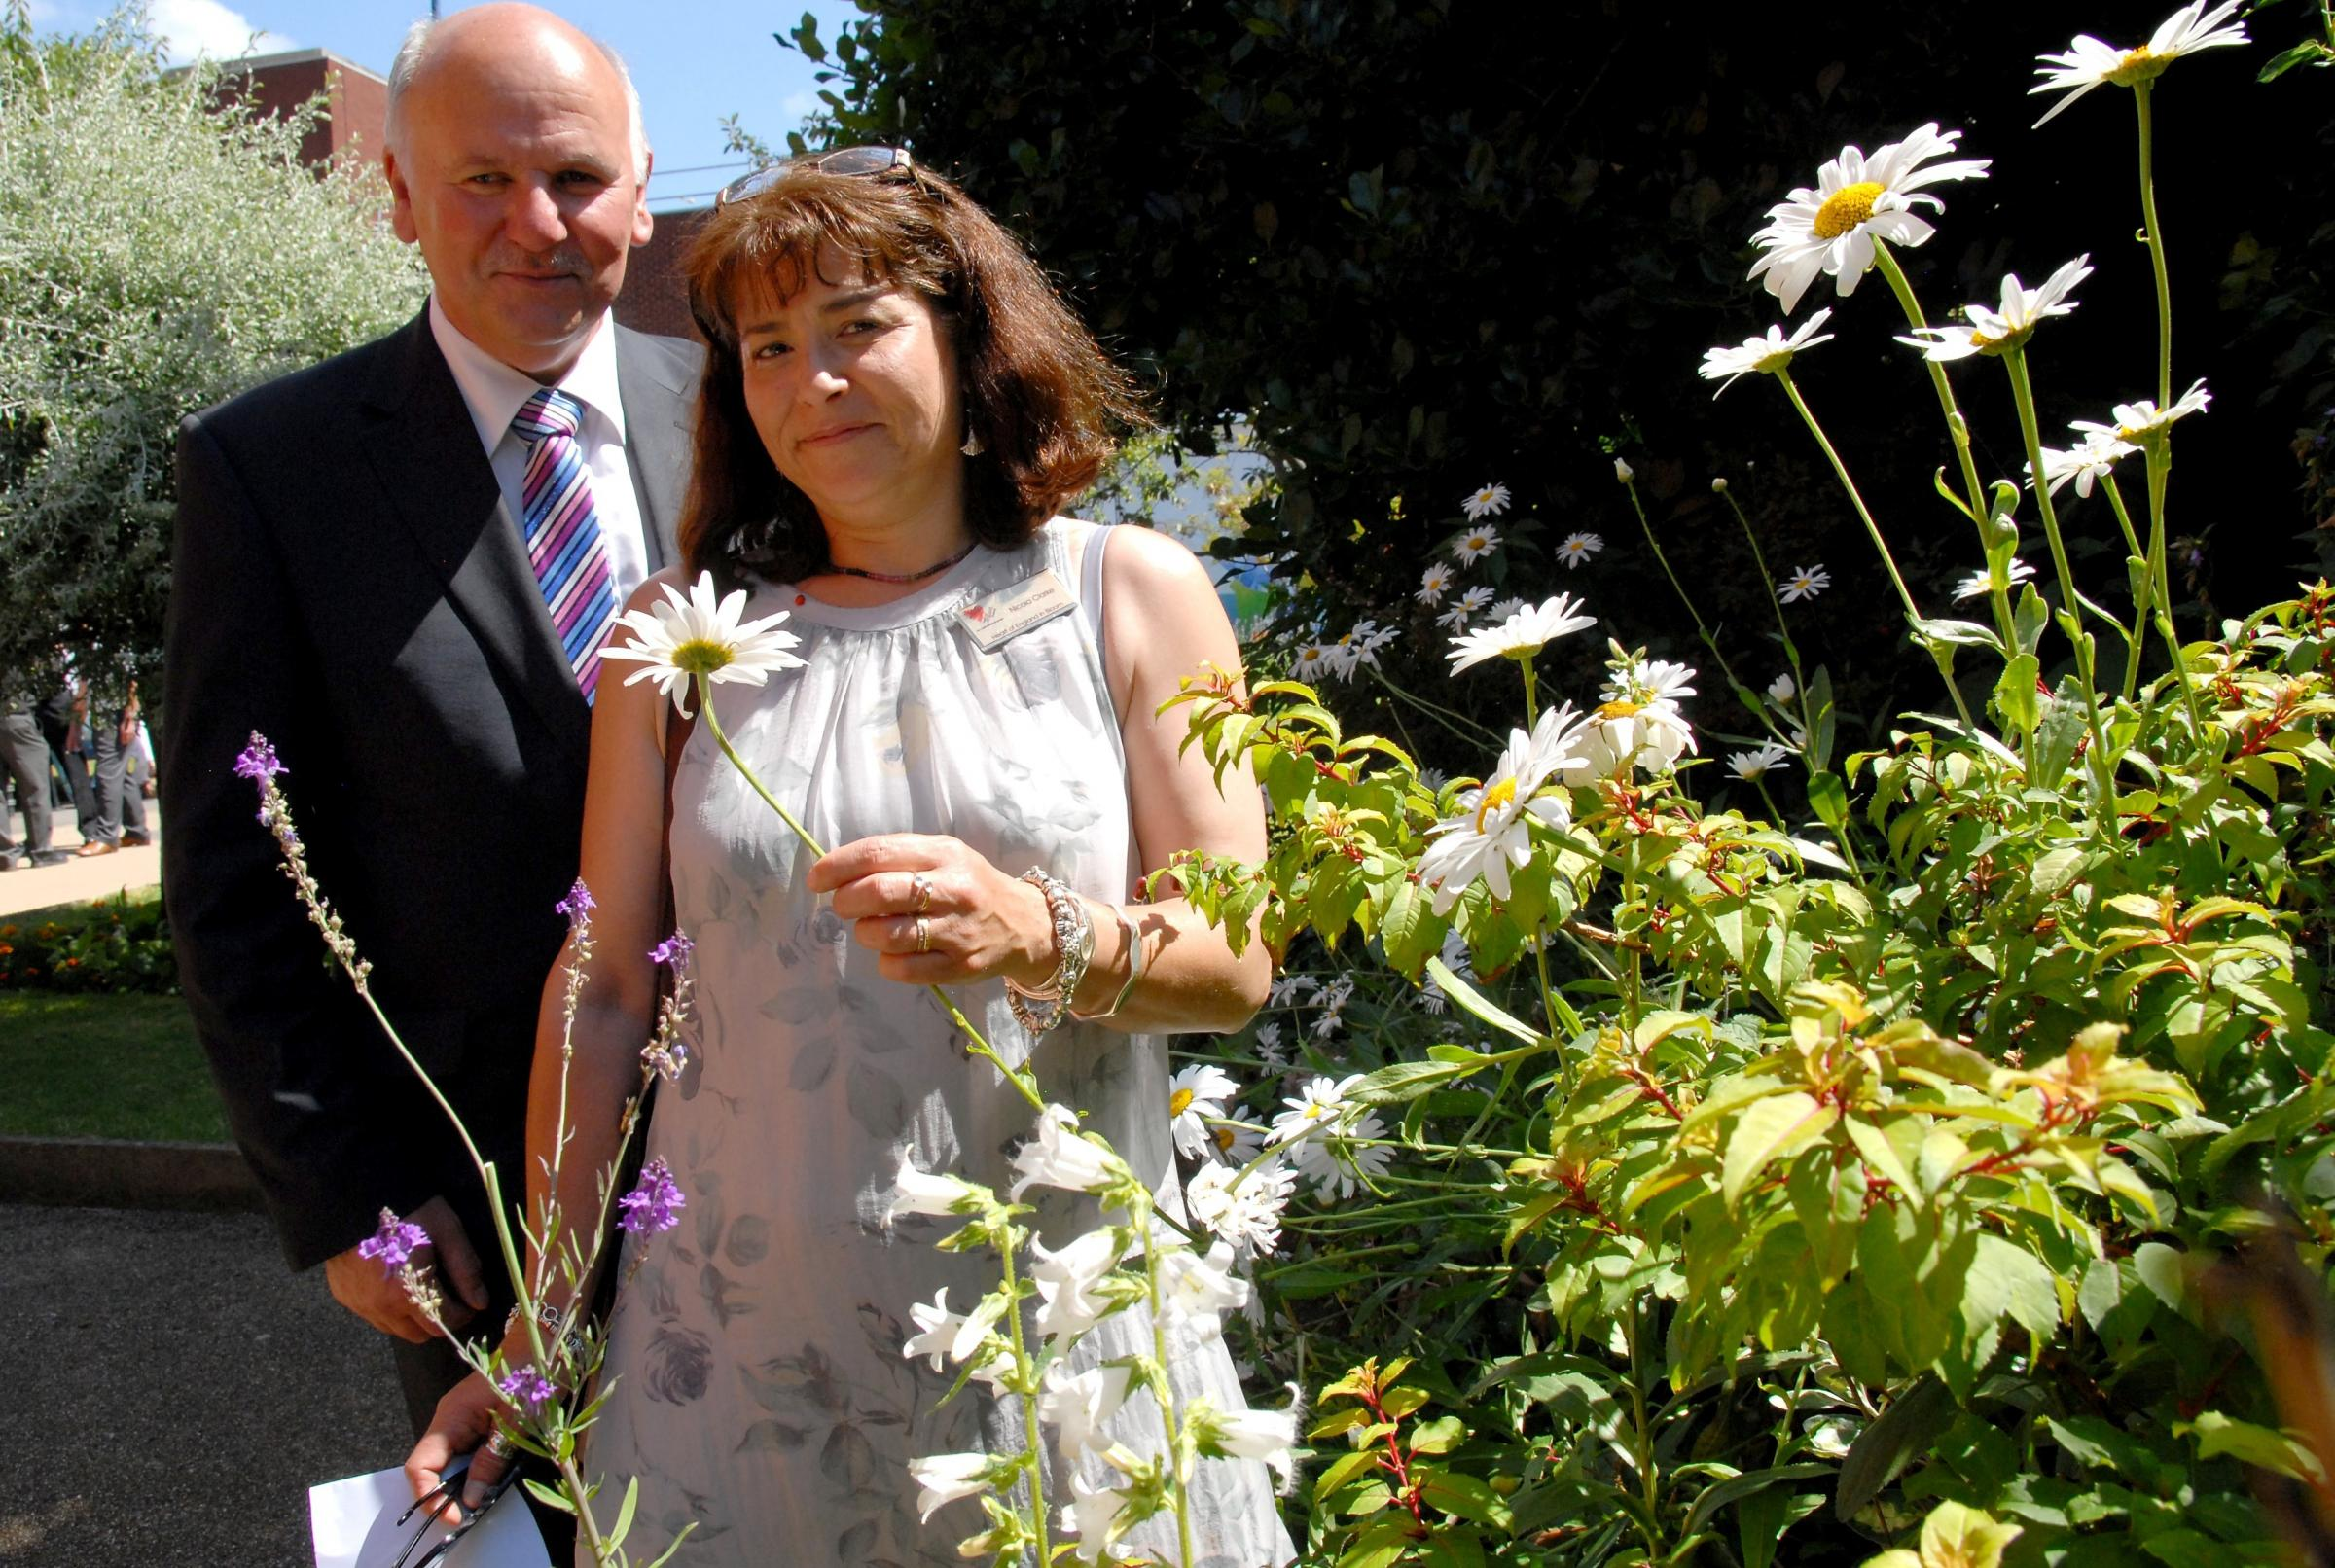 Left to right - Stourbridge in Bloom co-ordinator David Harcourt and Heart of England in Bloom judge Nicola Clarke. Buy photo: 301402M